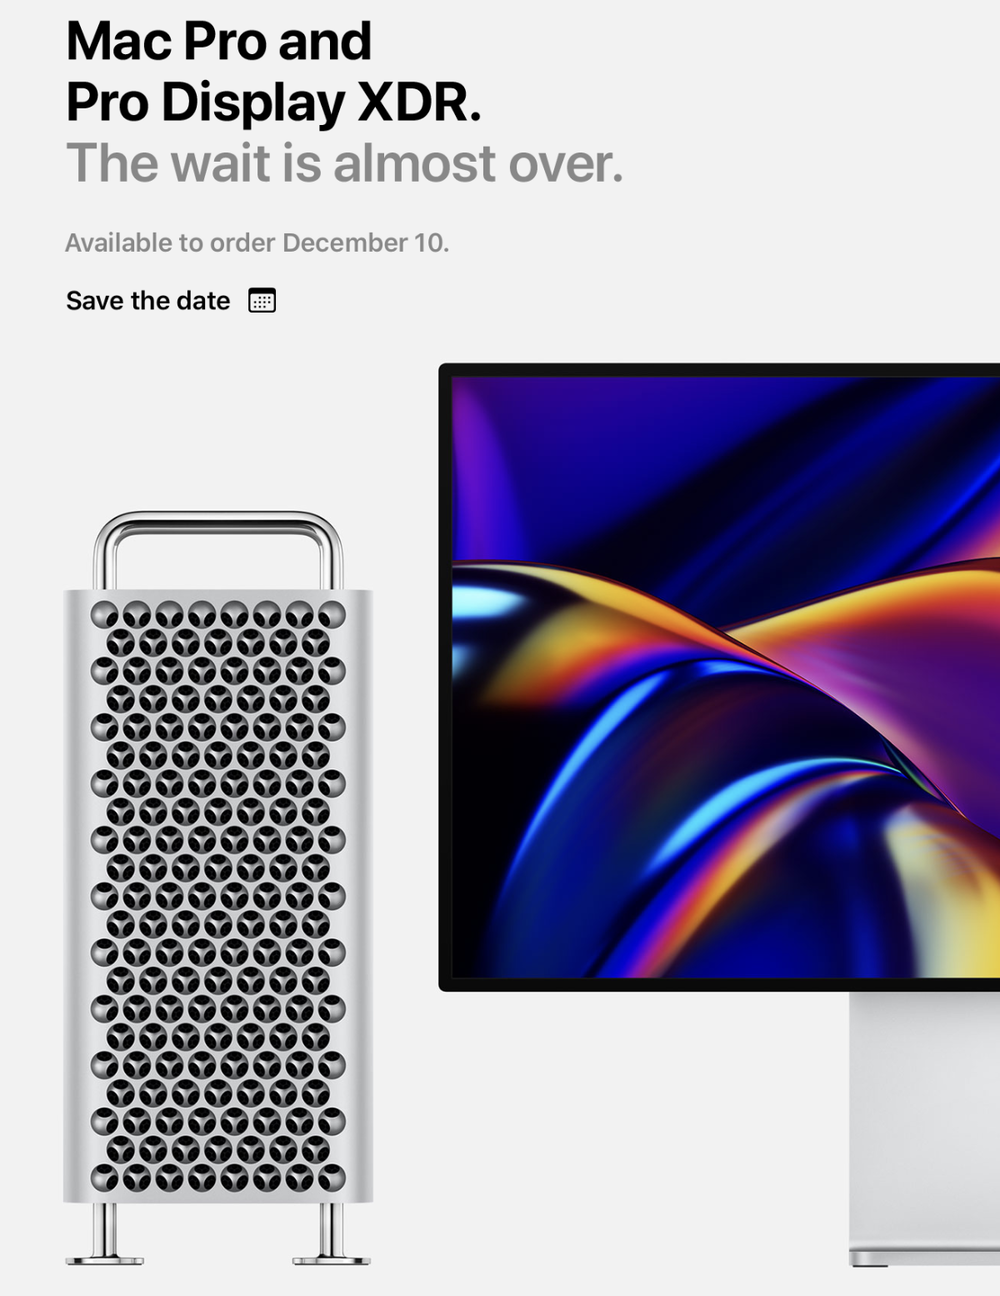 Apple's Mac Pro, Pro Display XDR available to order Dec. 10